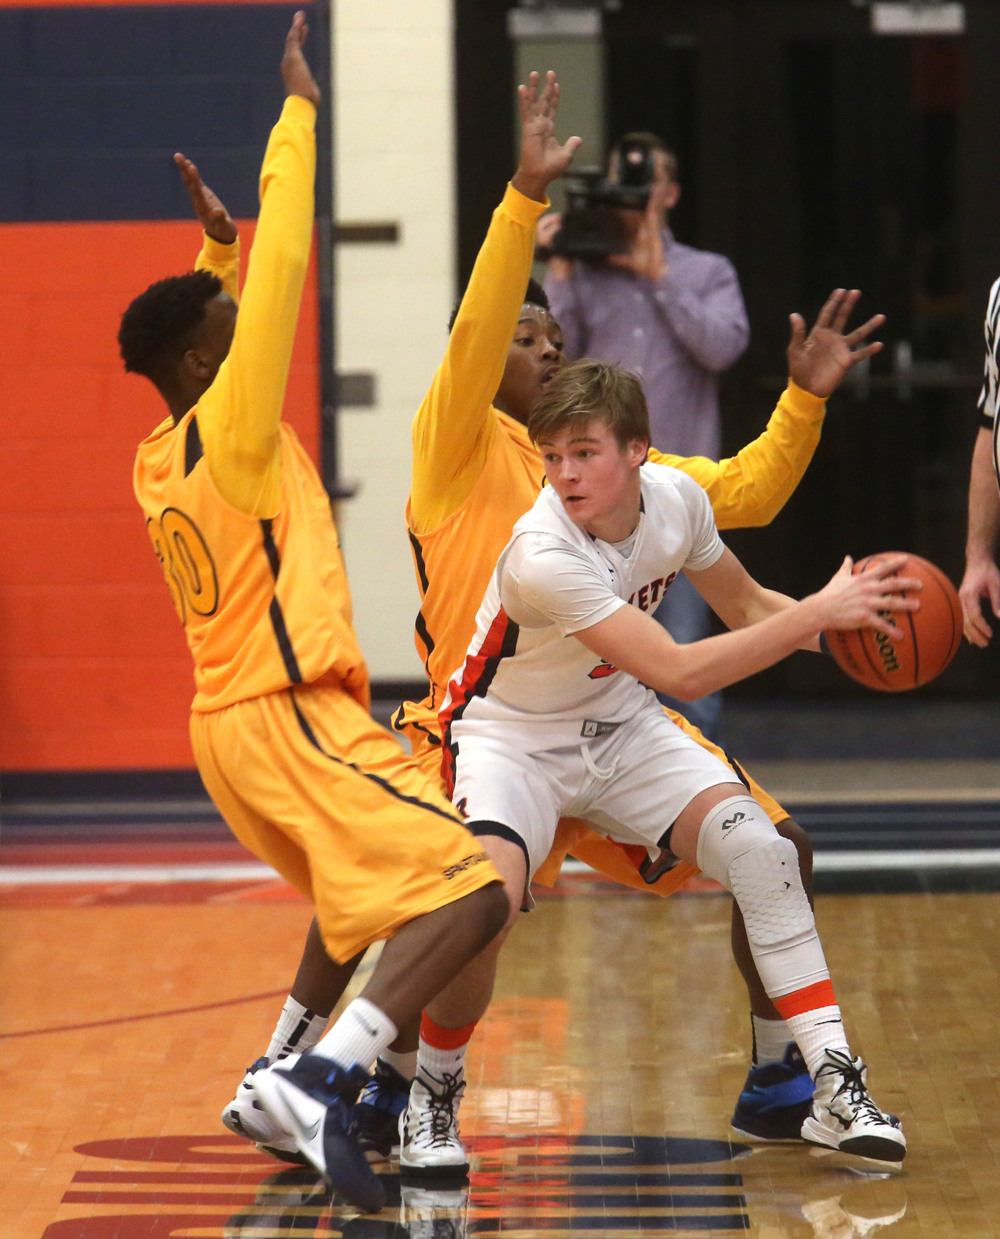 Rochester player Dalton Handlin tries to get the ball around Southeast players including D'Angelo Hughes at left.David Spencer/The State Journal Register